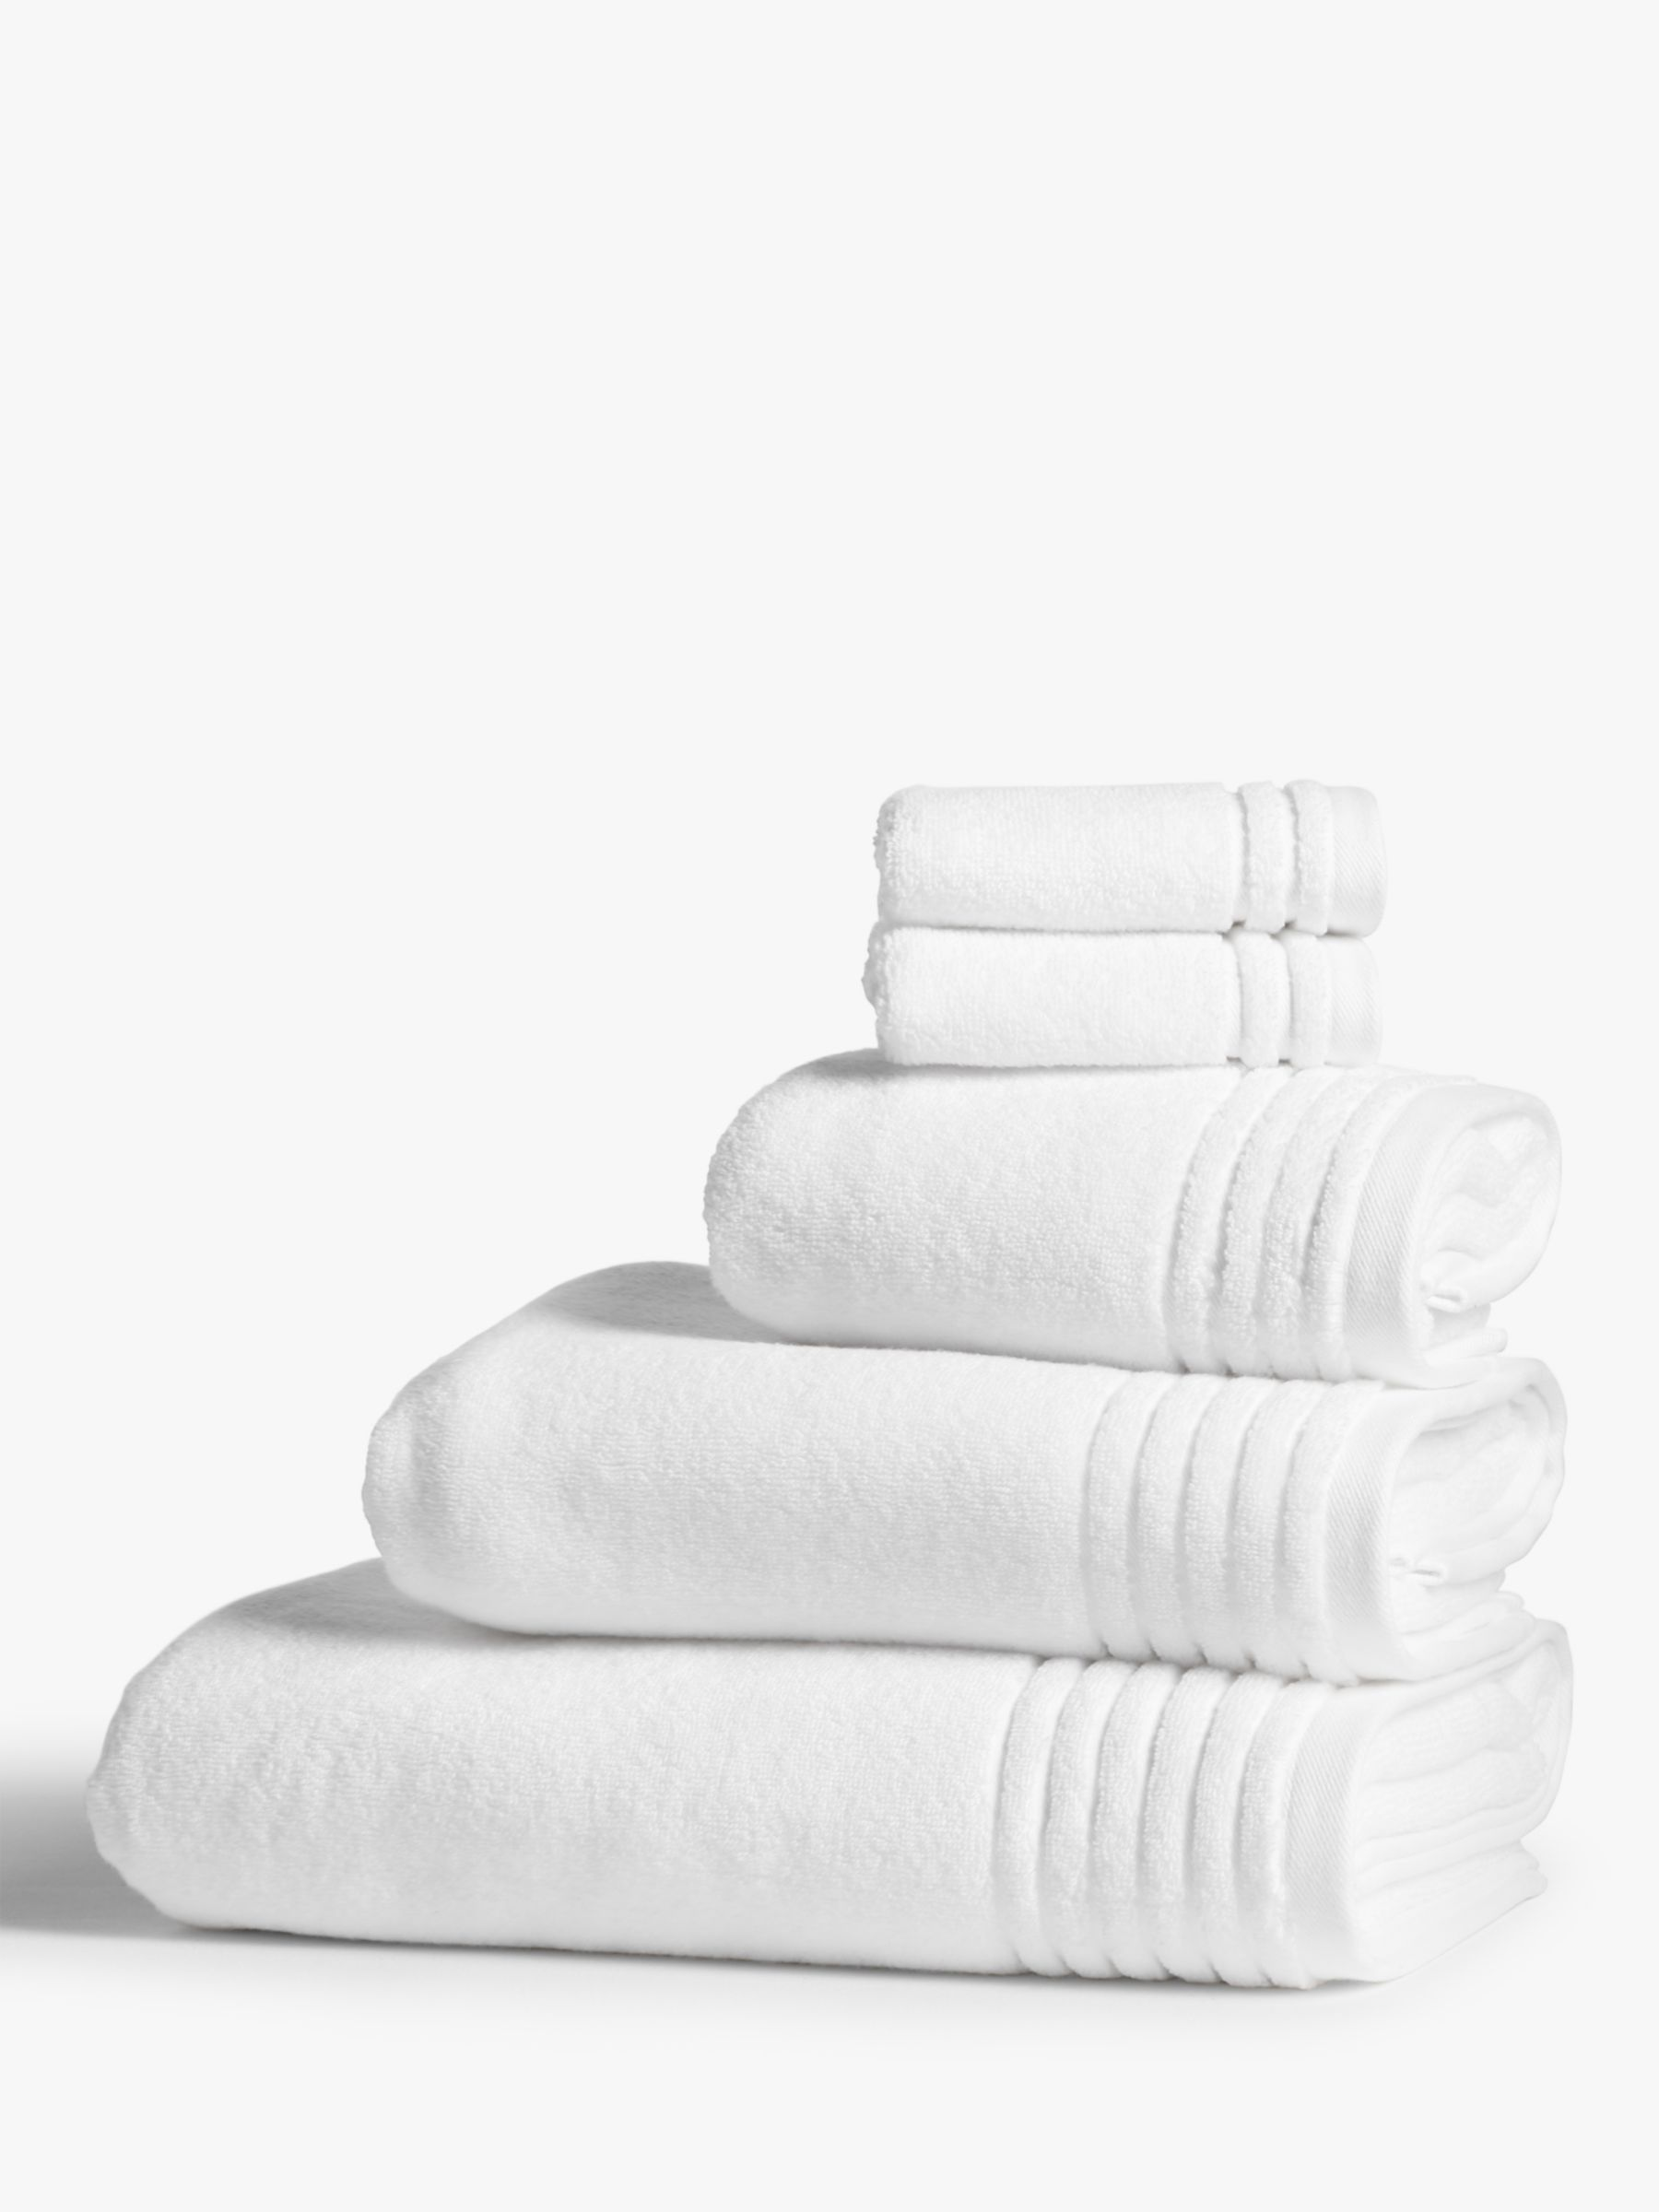 John Lewis Partners Ultra Soft Cotton Towels Pool Blue Cotton Towels Plain Towels John Lewis